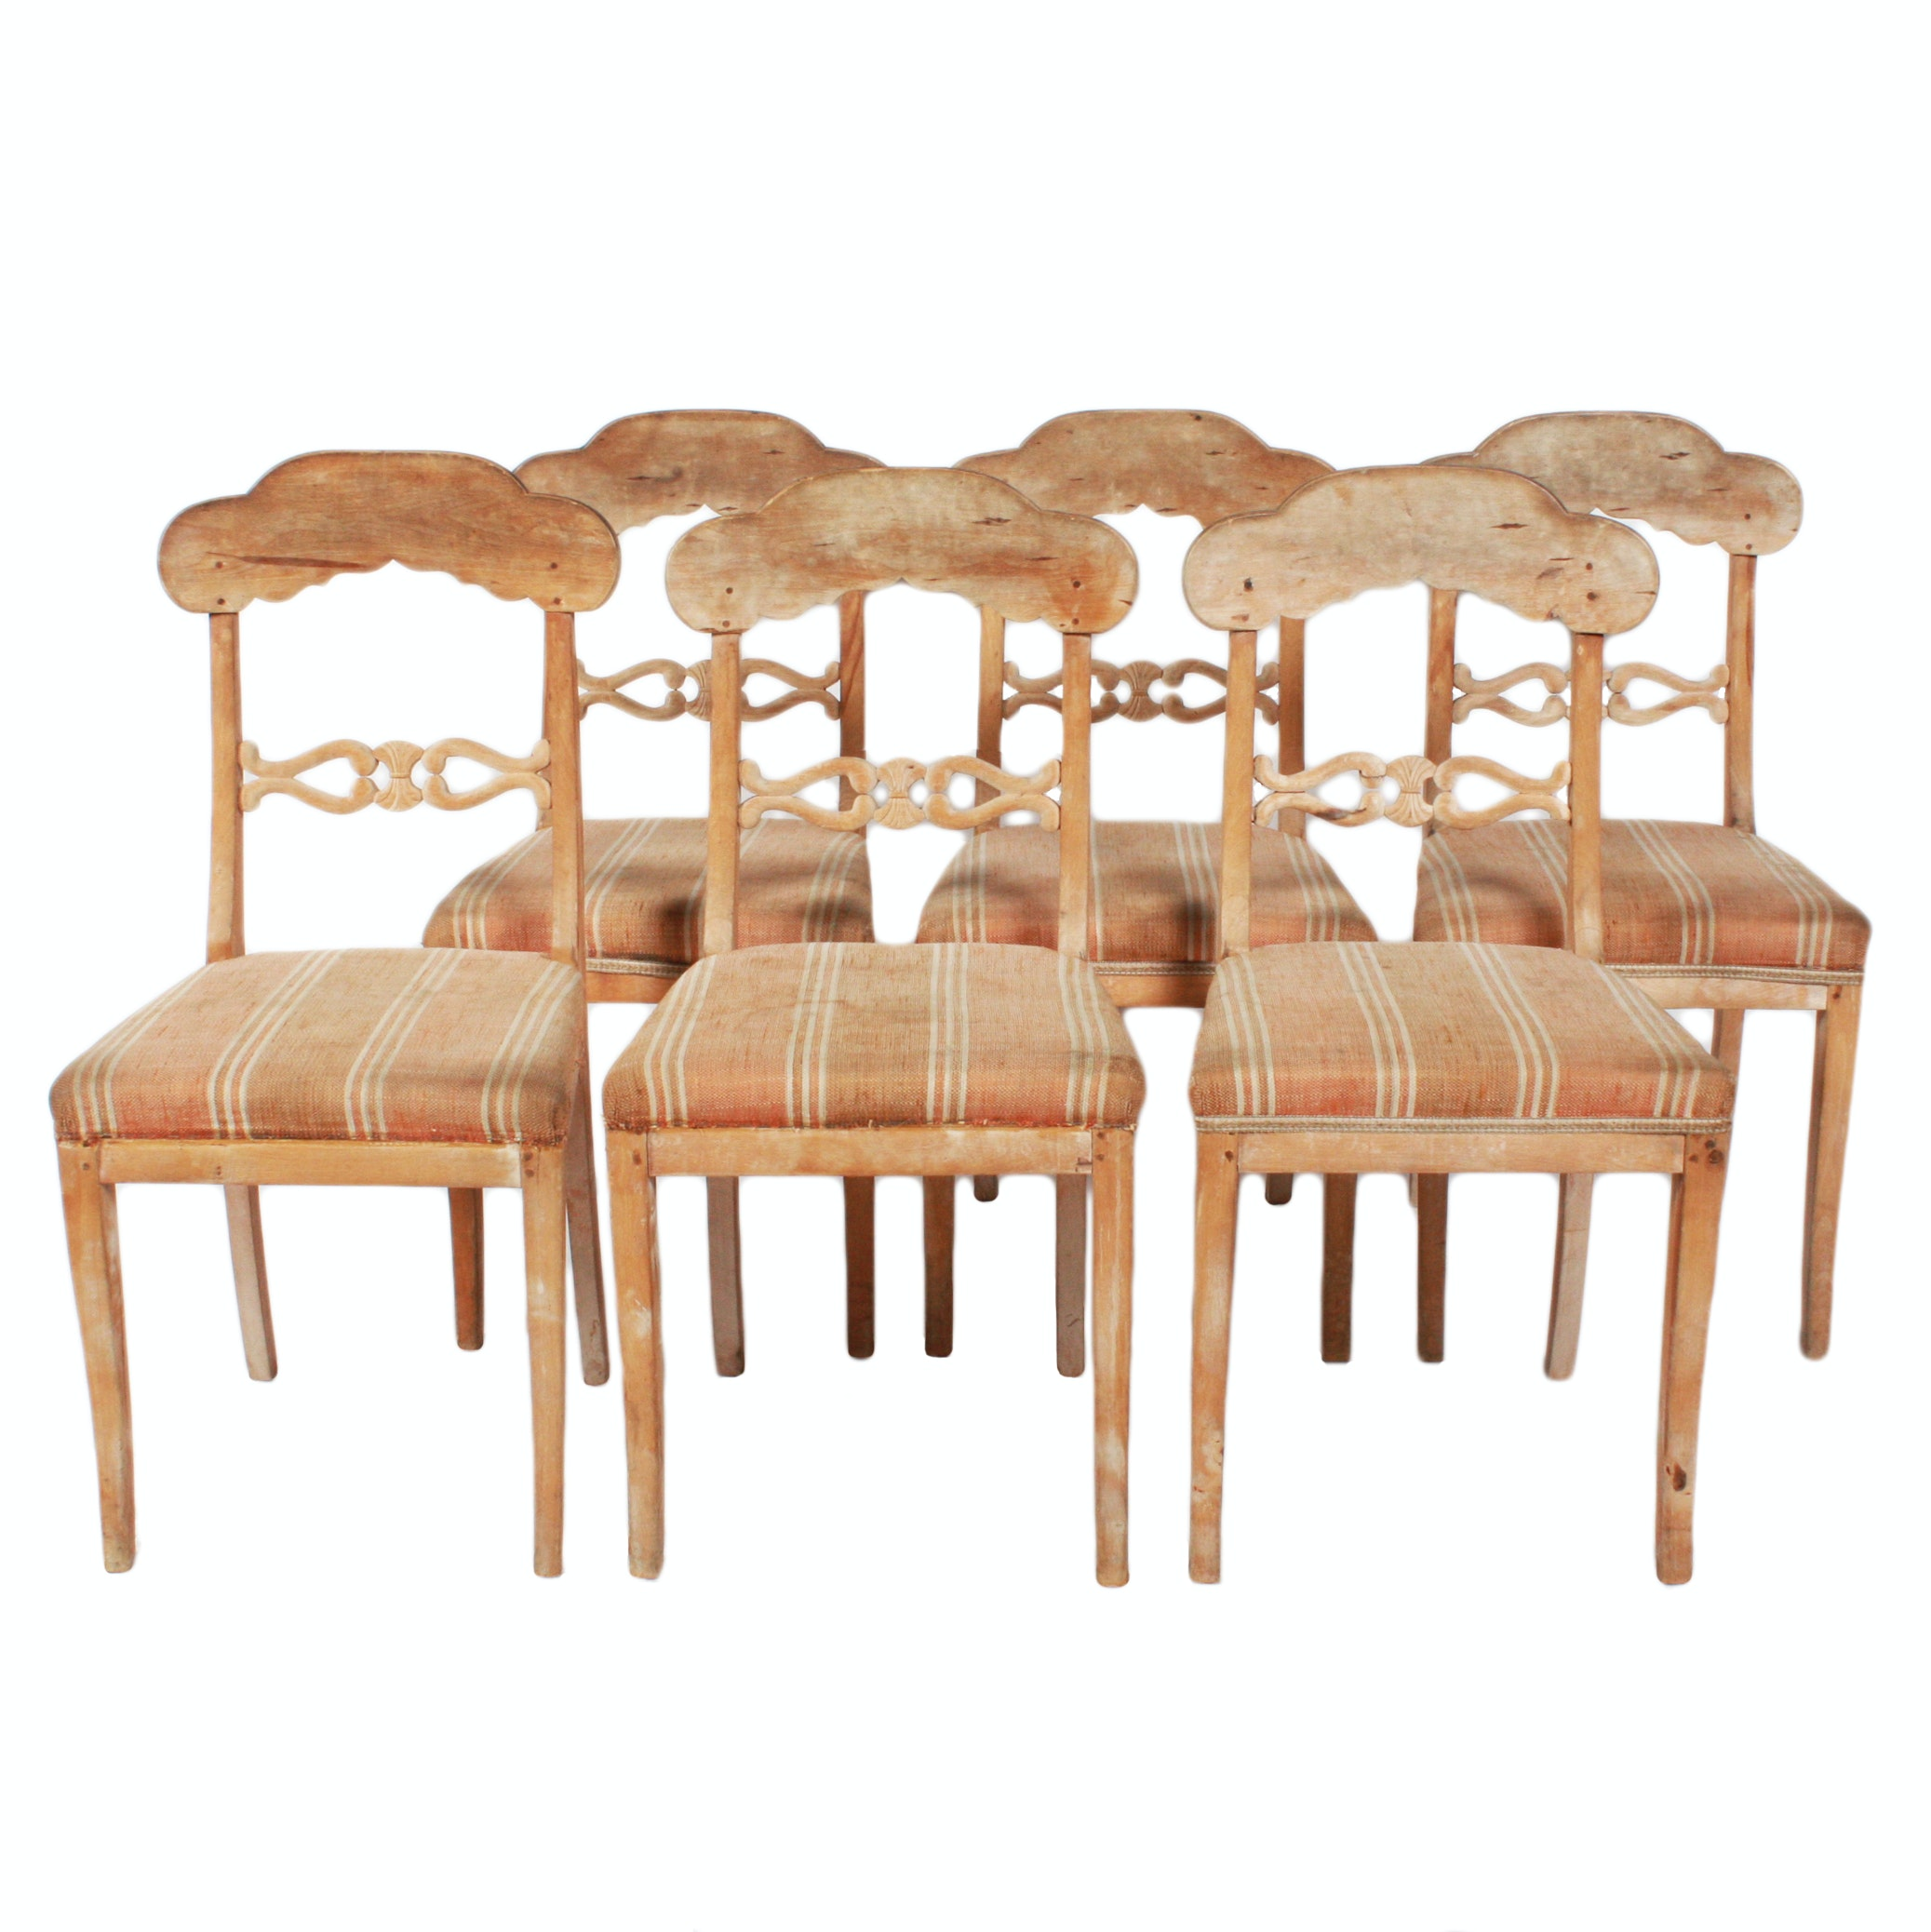 Rustic Style Upholstered Dining Chairs